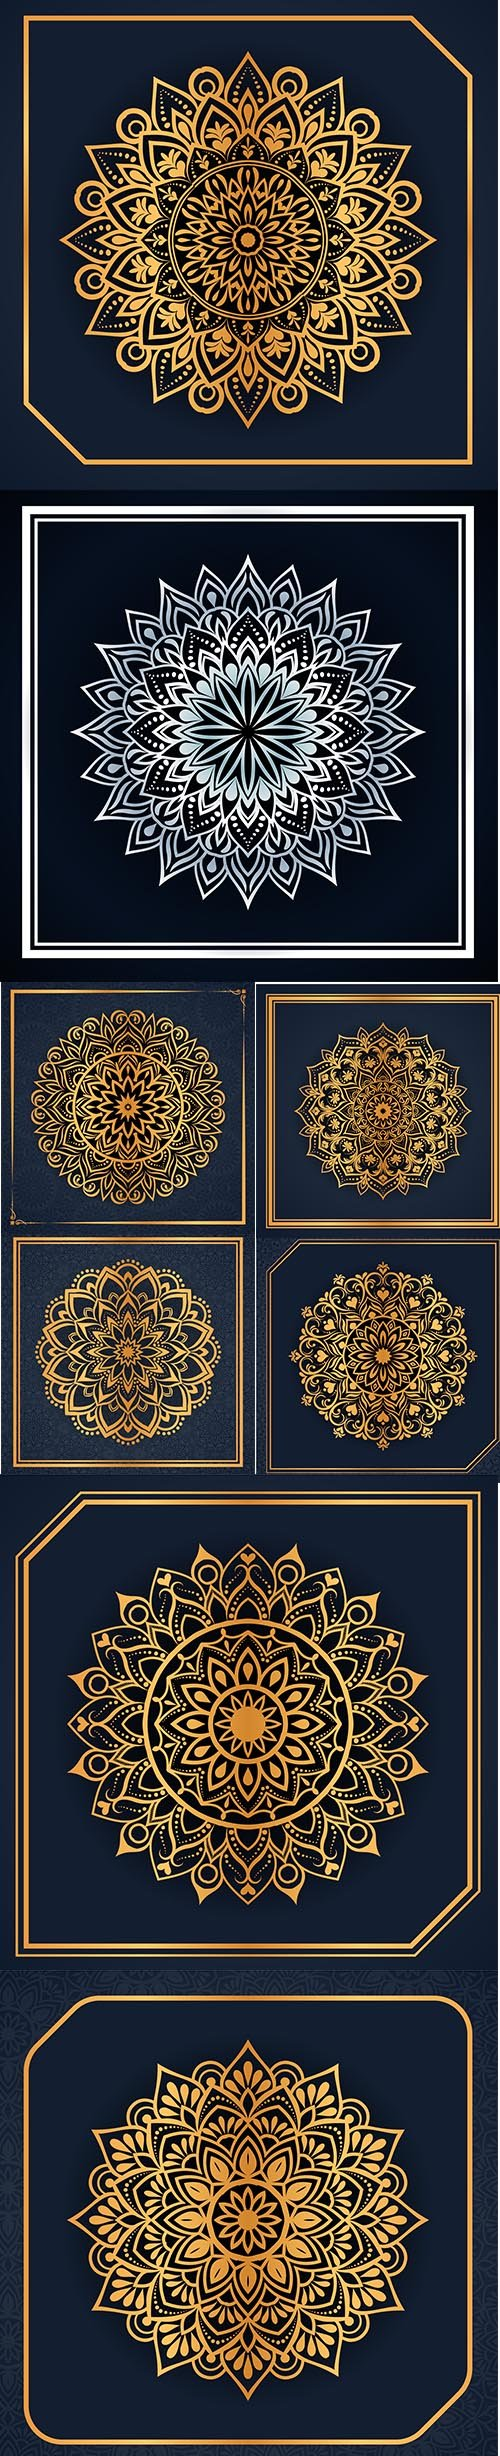 Creative Luxury Mandala Background Vol 2 Set